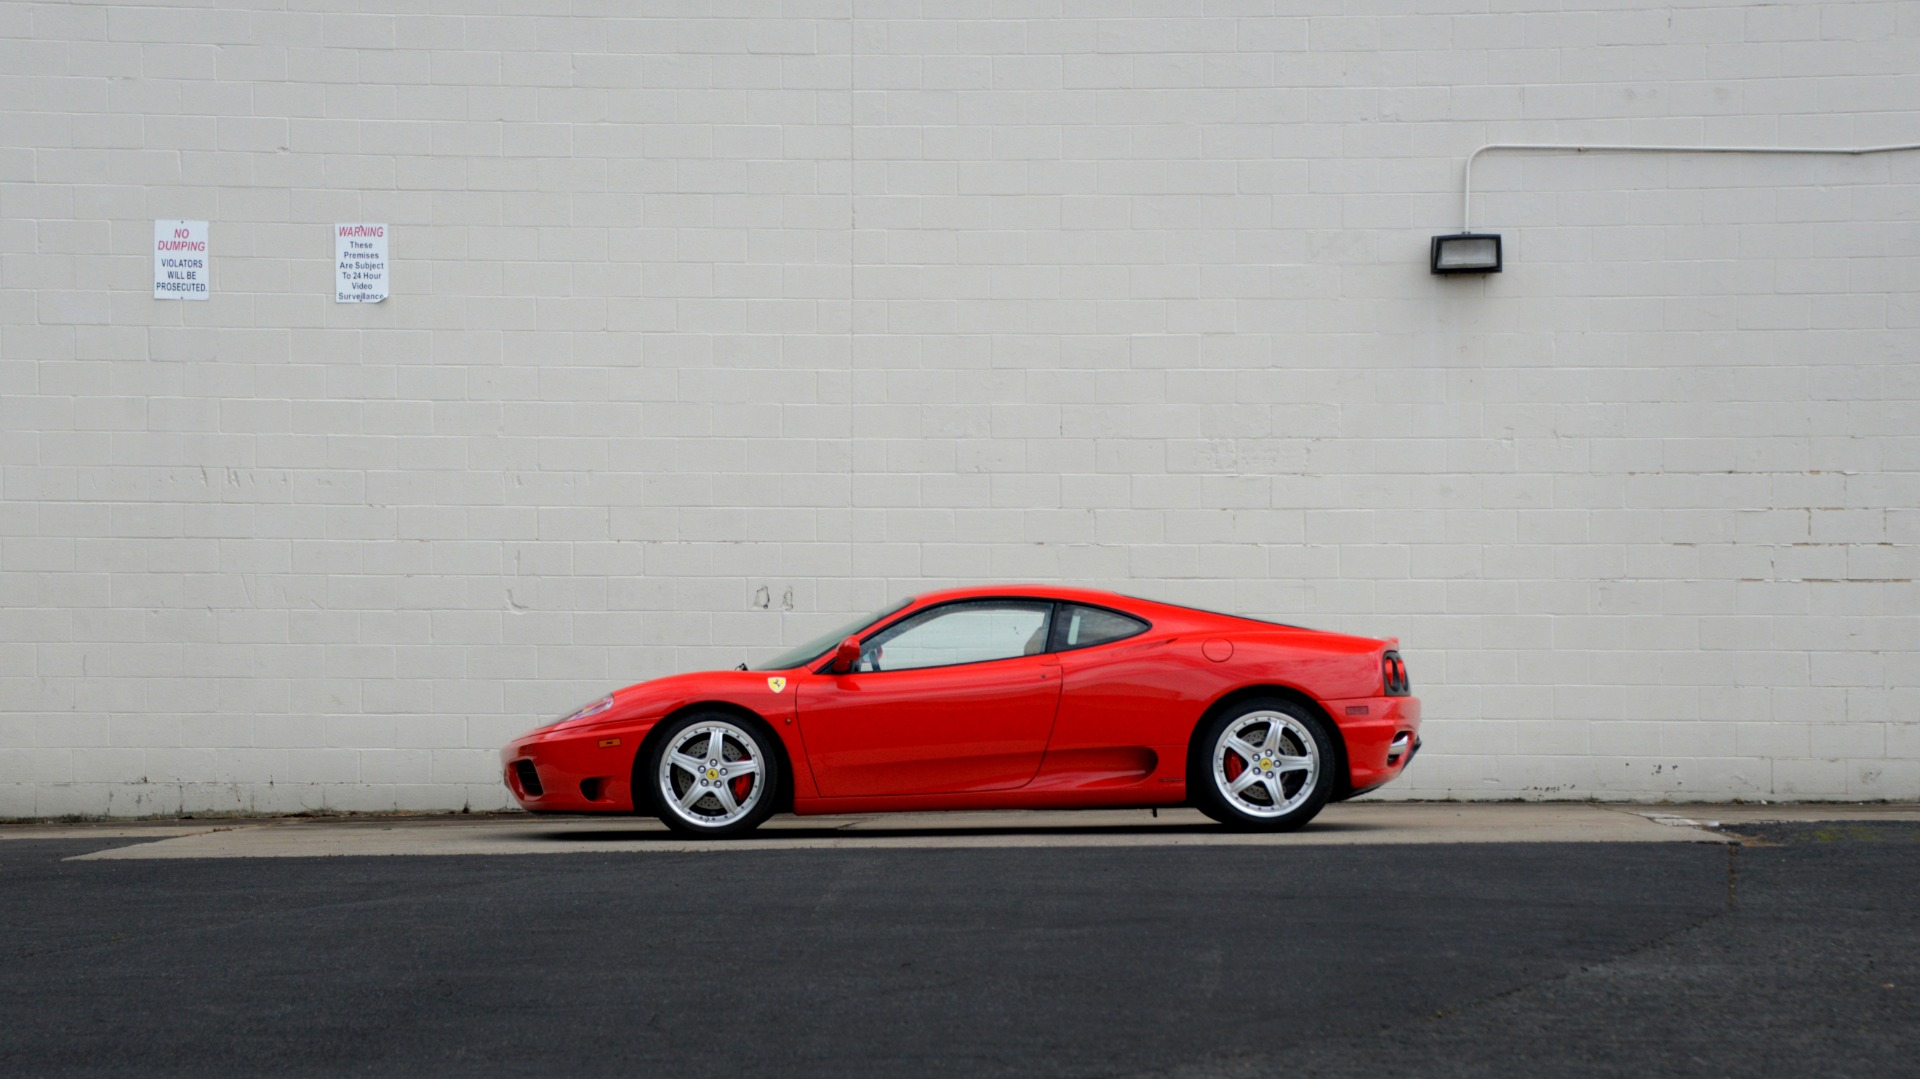 Used 2004 Ferrari 360 MODENA COUPE / GATED 6-SPD MANUAL / SUNROOF / LOW MILES for sale $89,995 at Formula Imports in Charlotte NC 28227 14